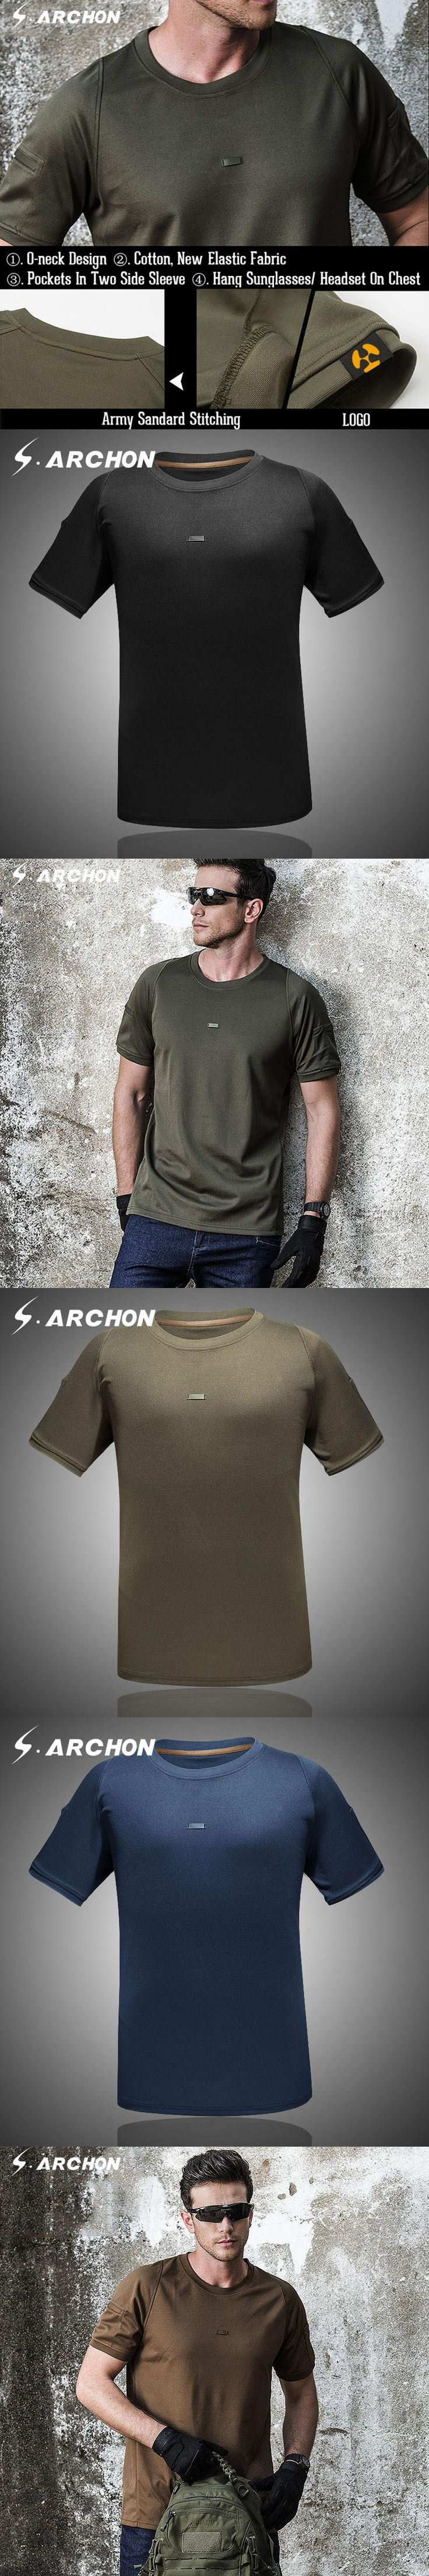 S.ARCHON Summer Tactical Short Sleeve Men T-Shirt Casual Military Breathable Cotton T-Shirt Fitness Army Pocket Elastic T Shirts